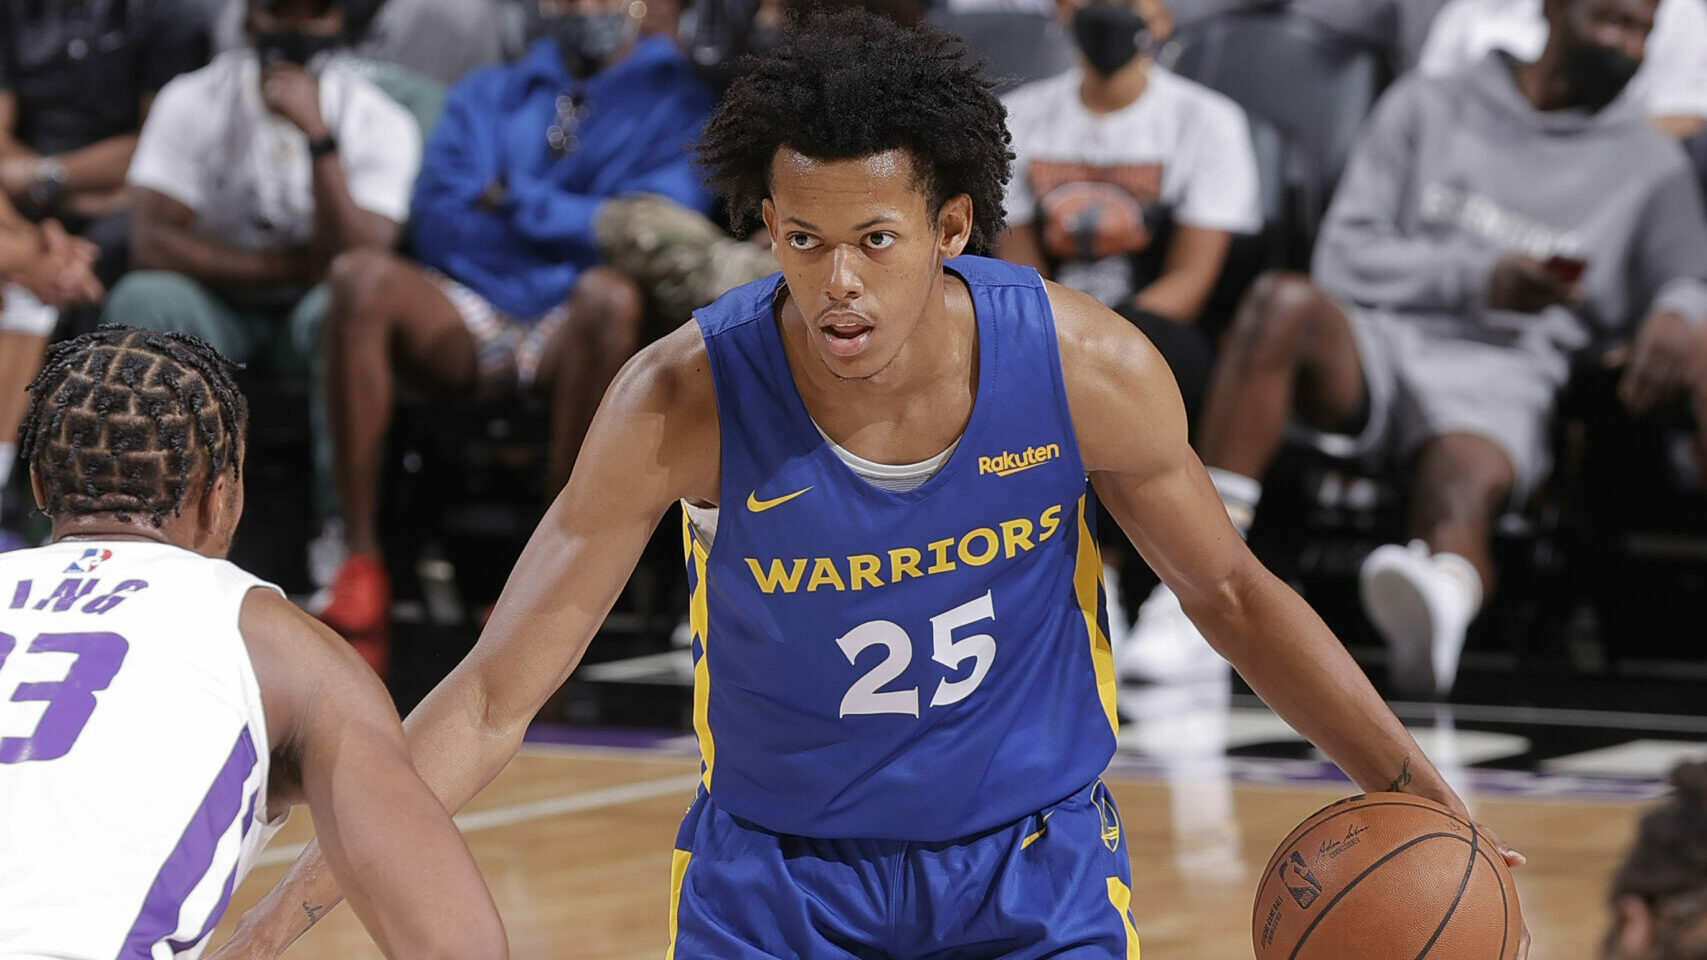 California Classic Summer League: Warriors defeat Kings 89-82 in overtime